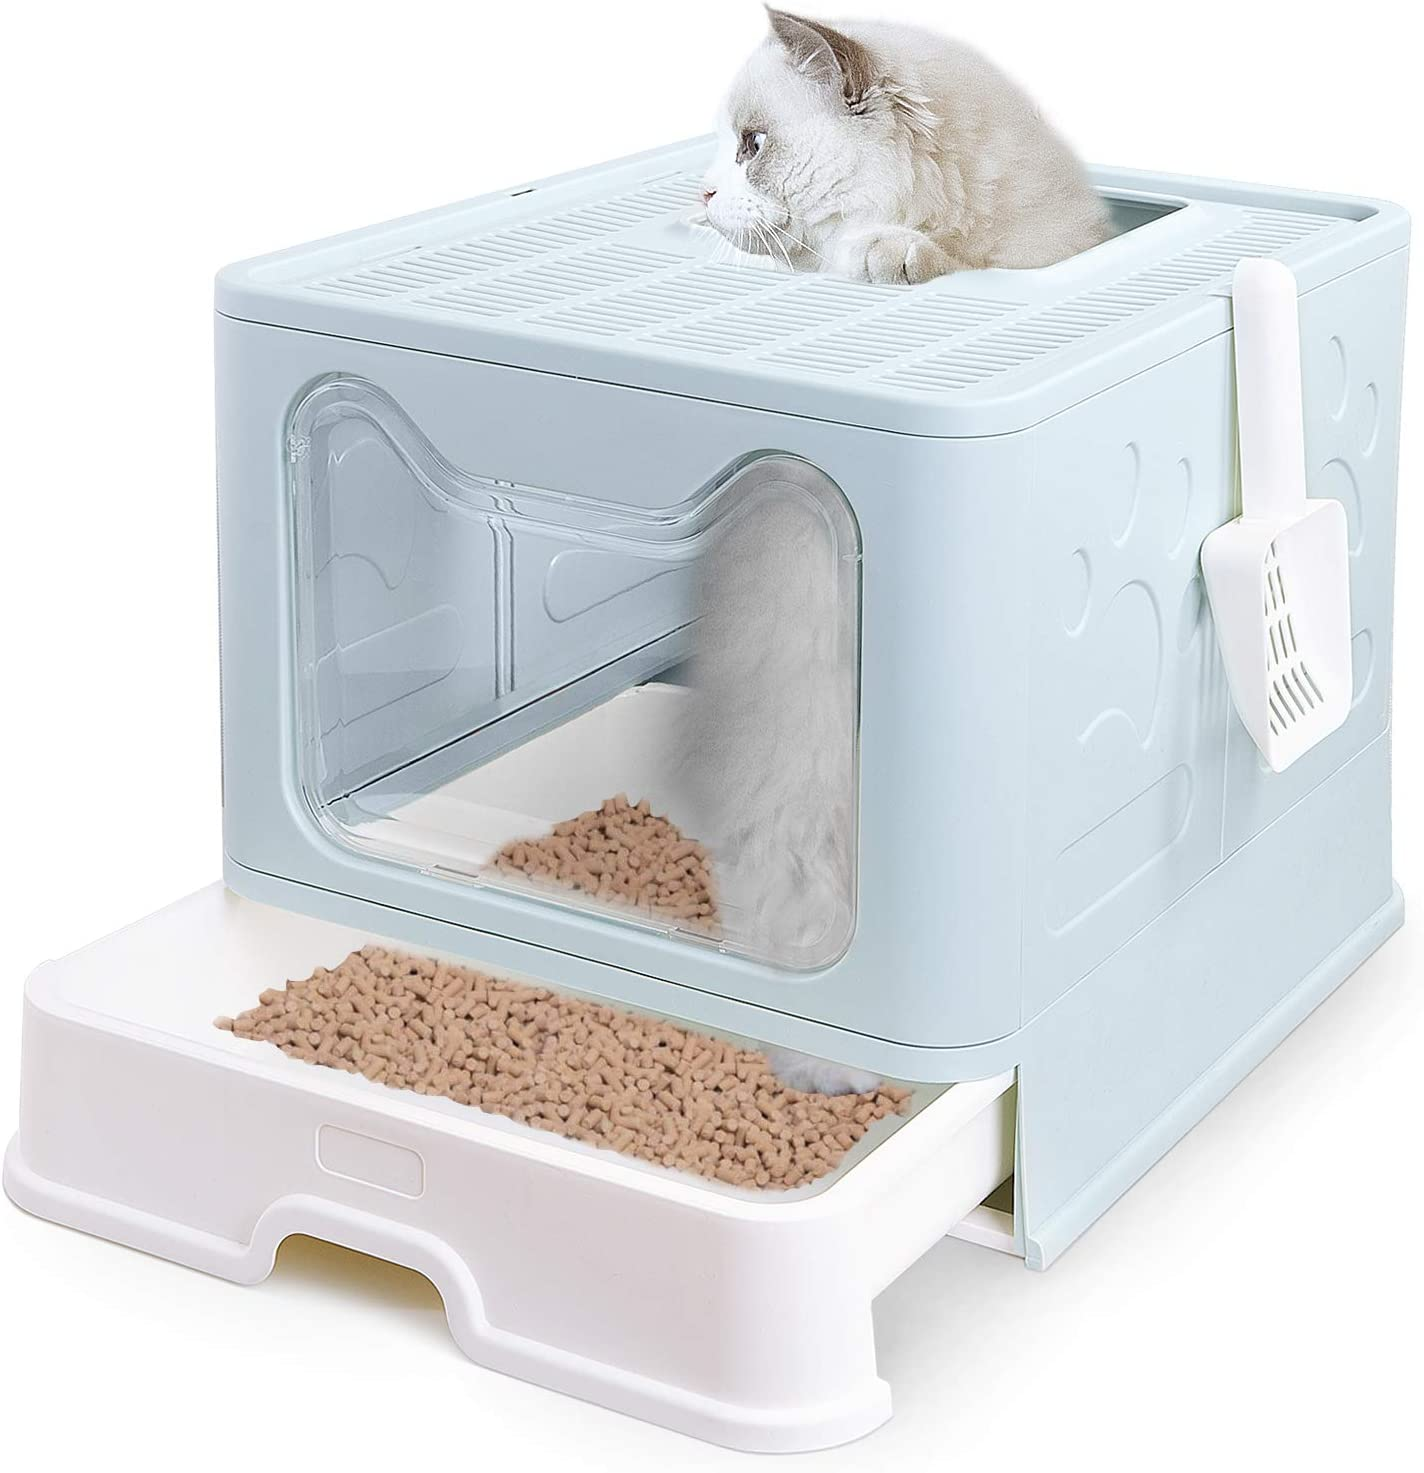 Petphabet Genuine Free New Orleans Mall Shipping Cat Litter Box Square Foldable Litte Hooded Jumbo